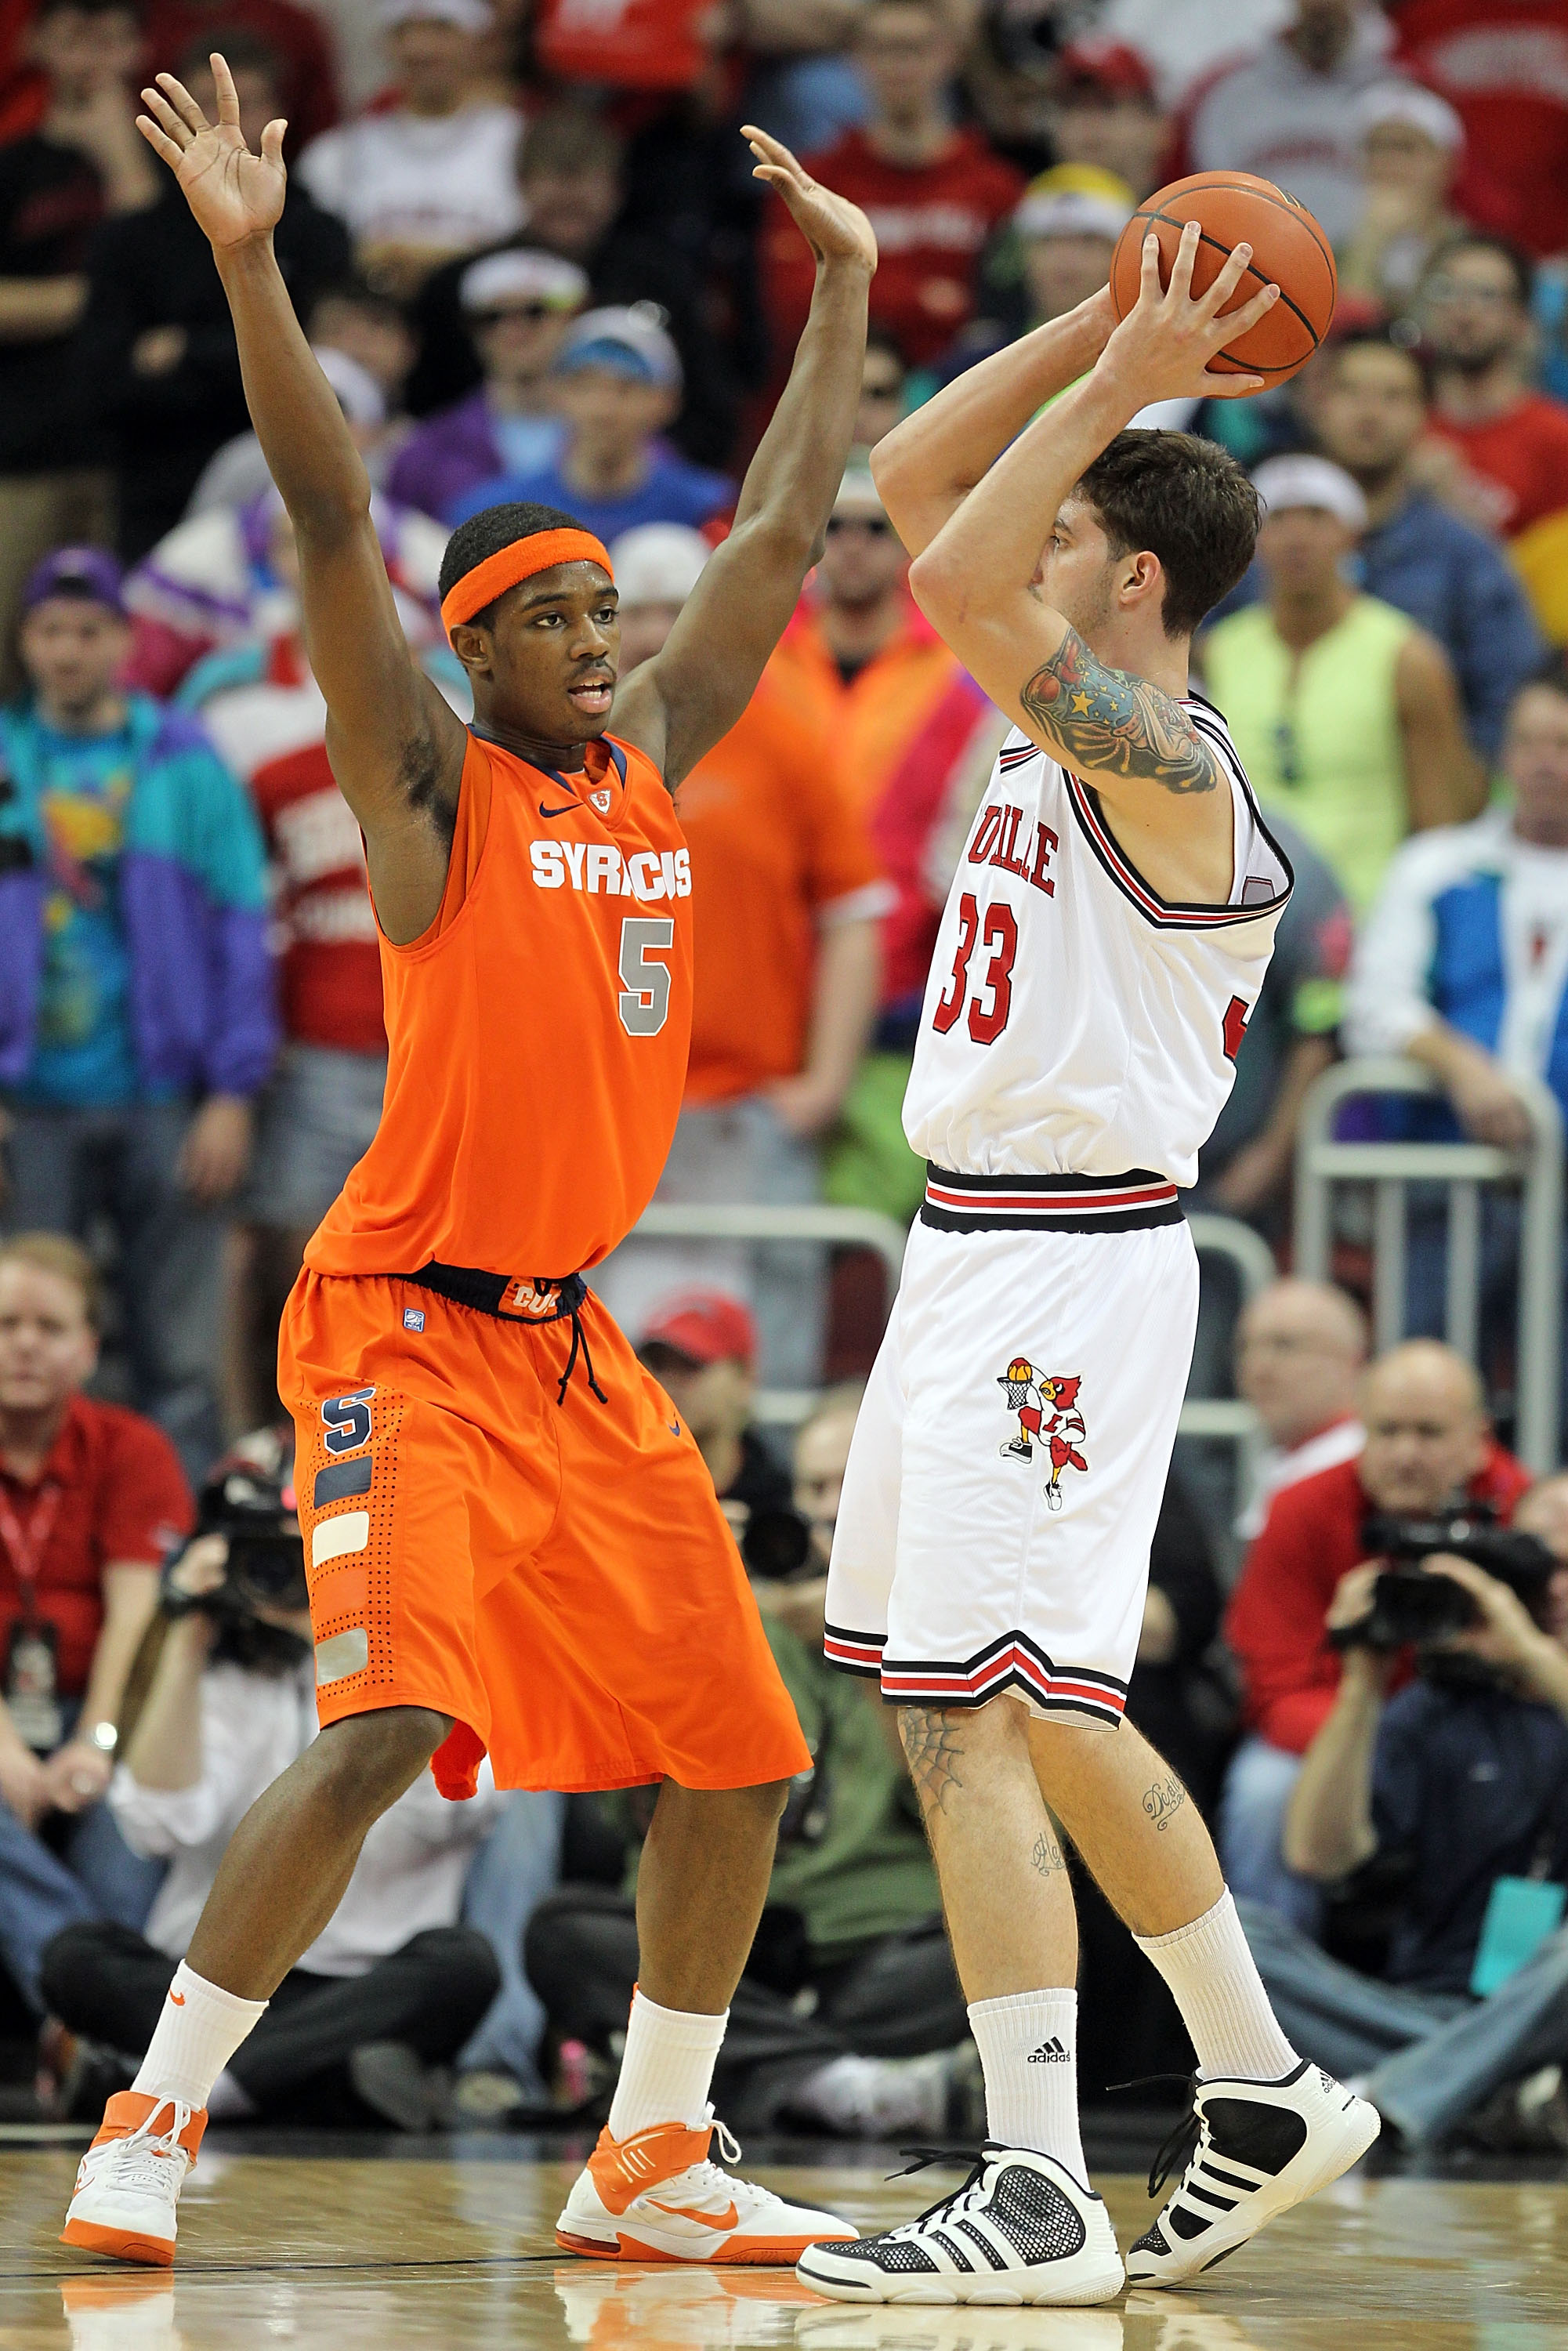 LOUISVILLE, KY - FEBRUARY 12: C.J. Fair #5 of the Syracuse Orange defends Mike Marra #33 of the Louisville Cardinals during the Big East Conference game at the KFC Yum! Center on February 12, 2011 in Louisville, Kentucky.  Louisville won 73-69.  (Photo by